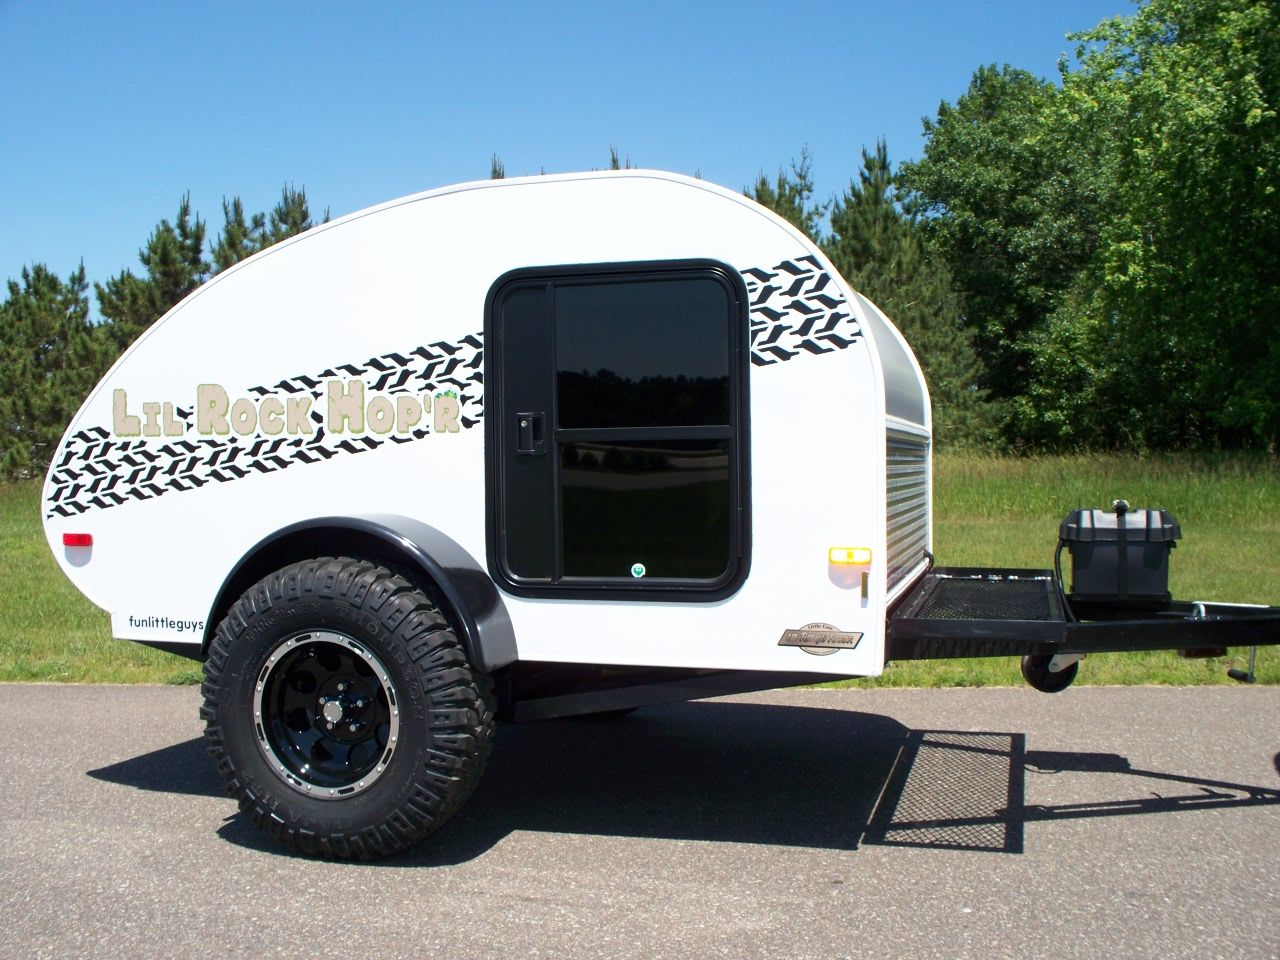 Micro Lightweight Travel Campers Bodybuilding Com Forums Small Camping Trailer Teardrop Trailer Travel Camper